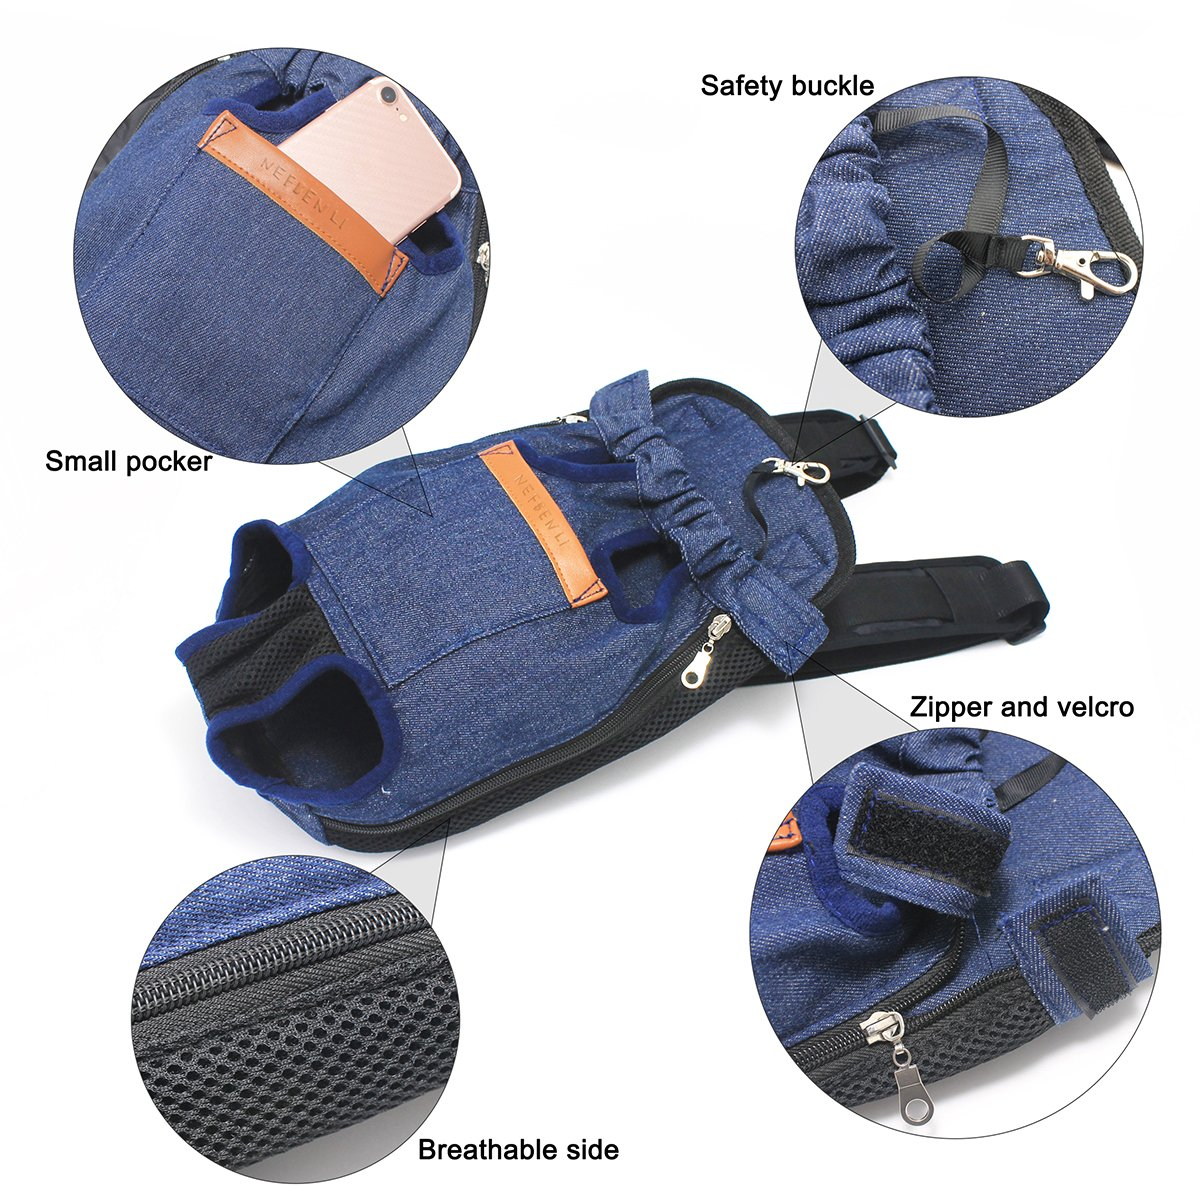 NEFBENLI Denim Blue Front Kangaroo Pouch Dog Carrier,Wide Straps Shoulder Pads,Adjustable Legs out Pet Backpack Carrier Walking,Travel,Hiking,Camping (X-Large) by NEFBENLI (Image #6)